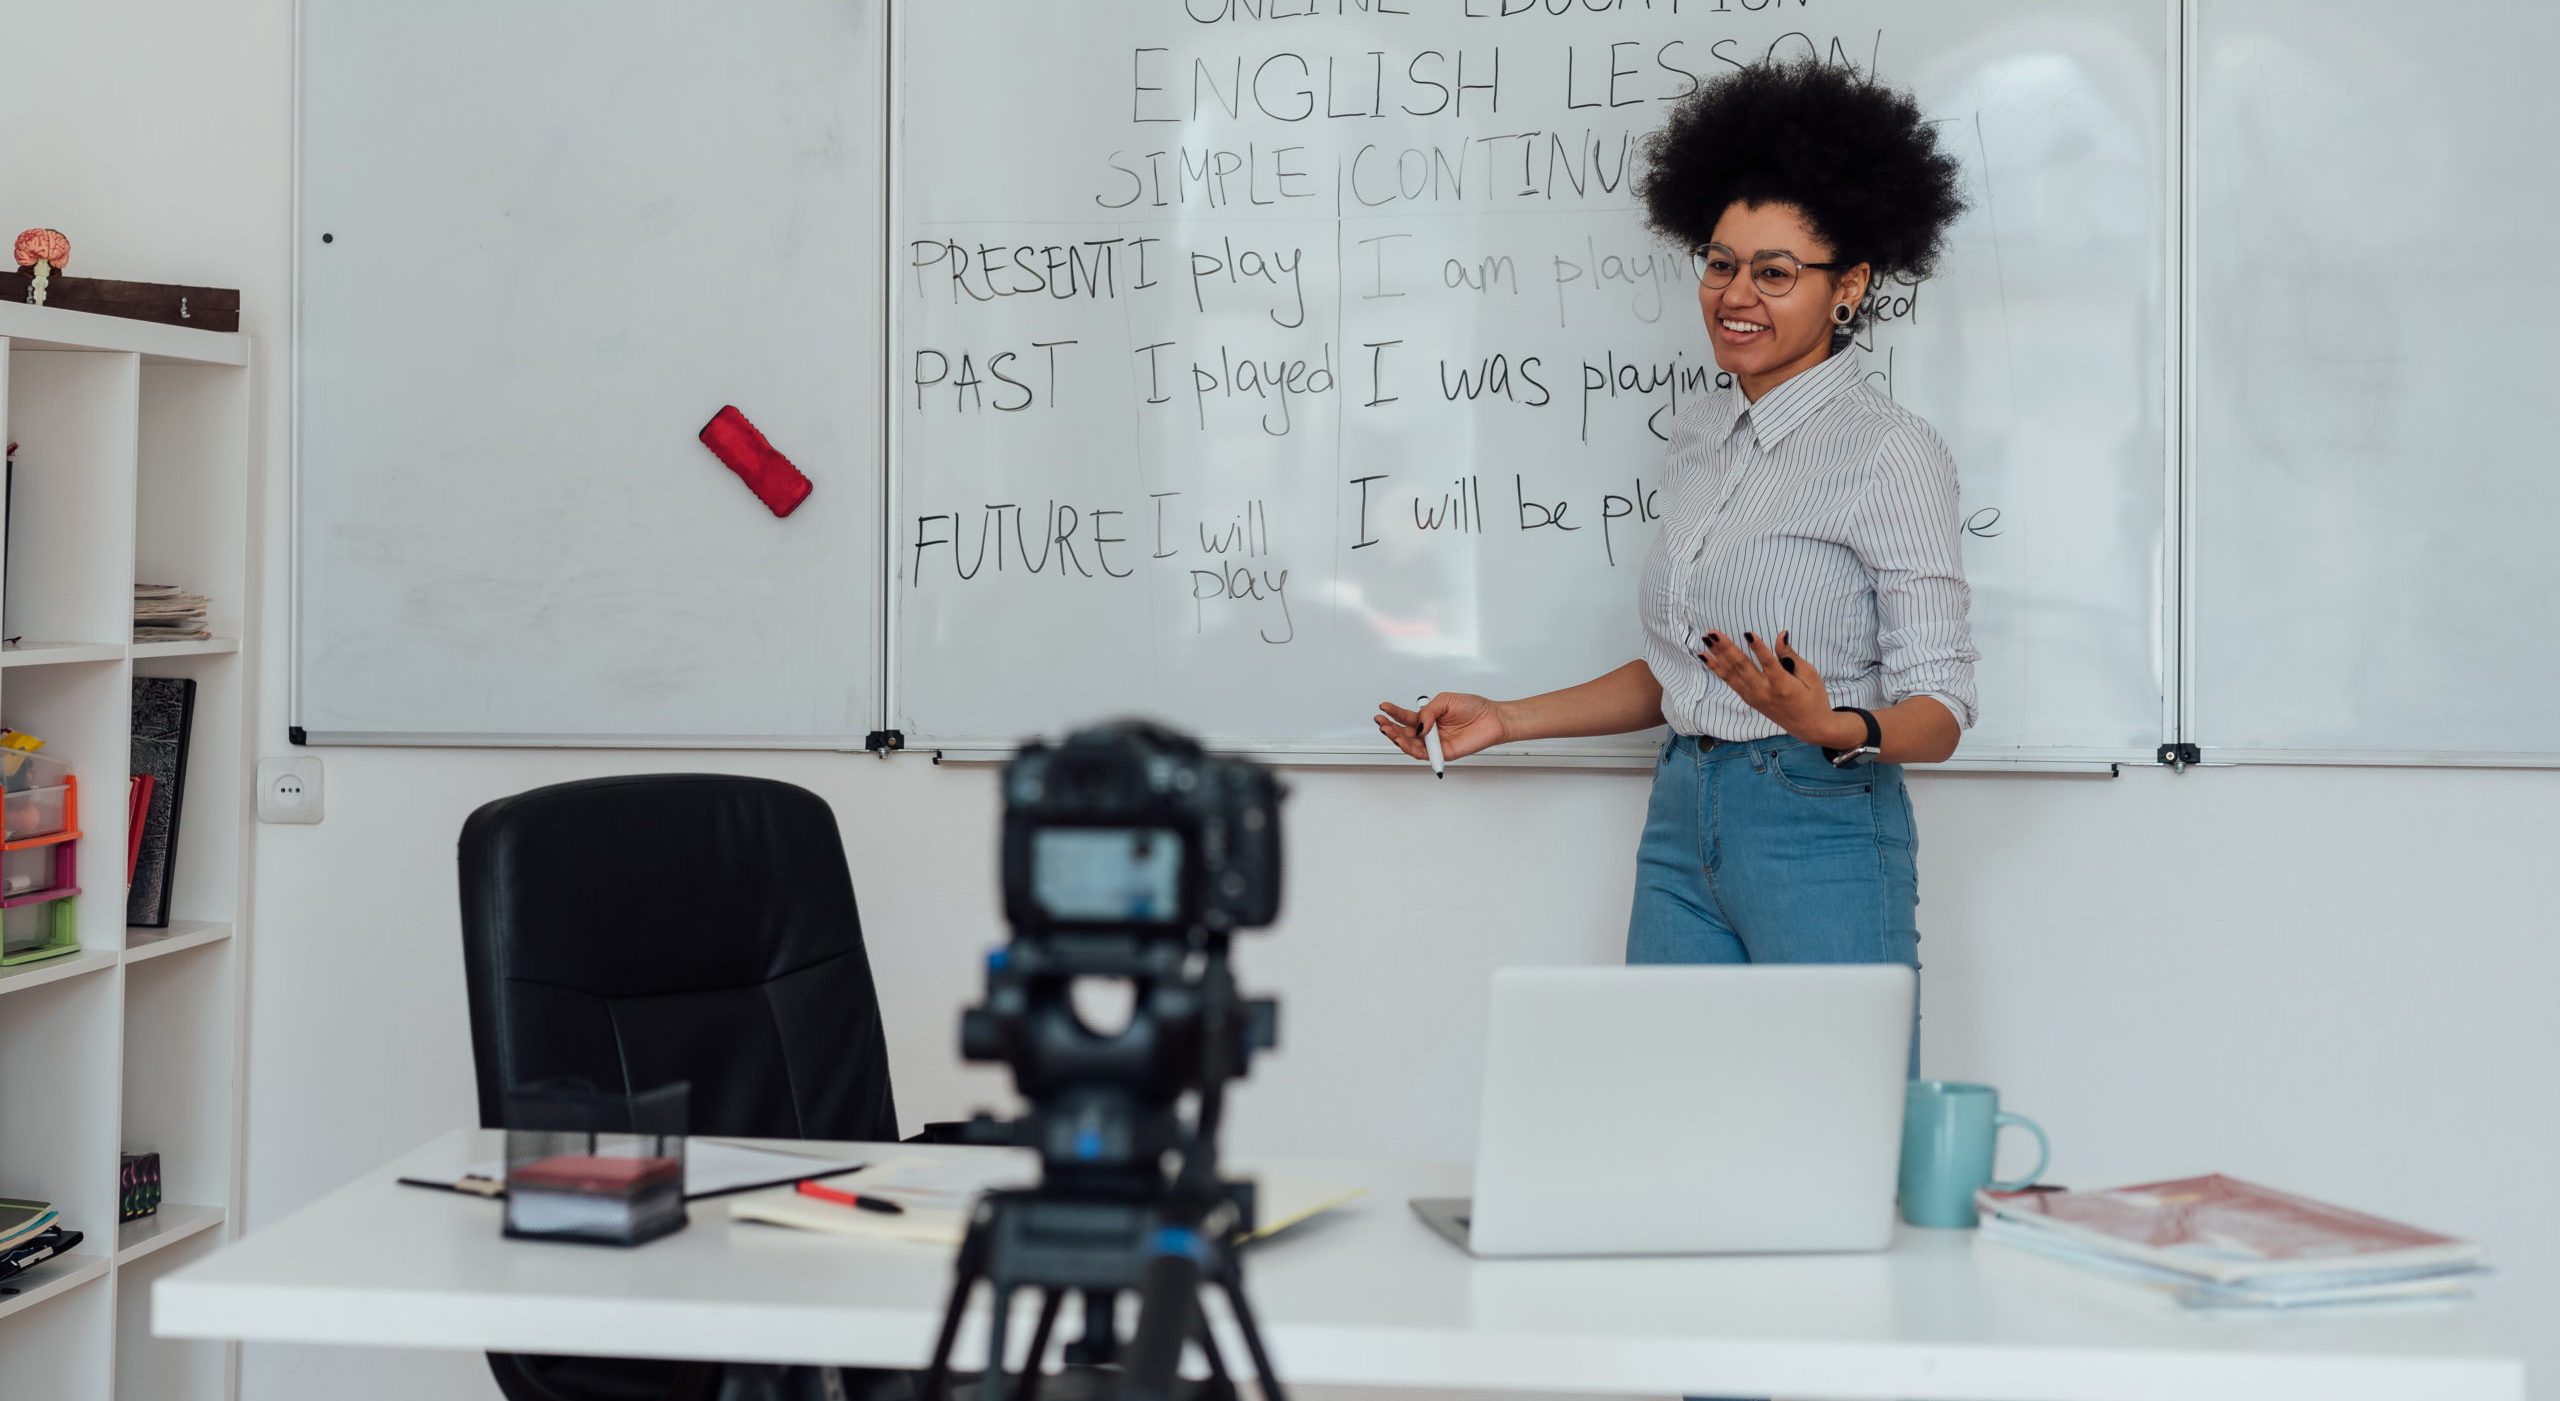 Corsi_online_Giving online class. Young afro american female English teacher standing near whiteboard and smiling, explaining rules of English grammar online. Main focus on woman. E-learning, distance education